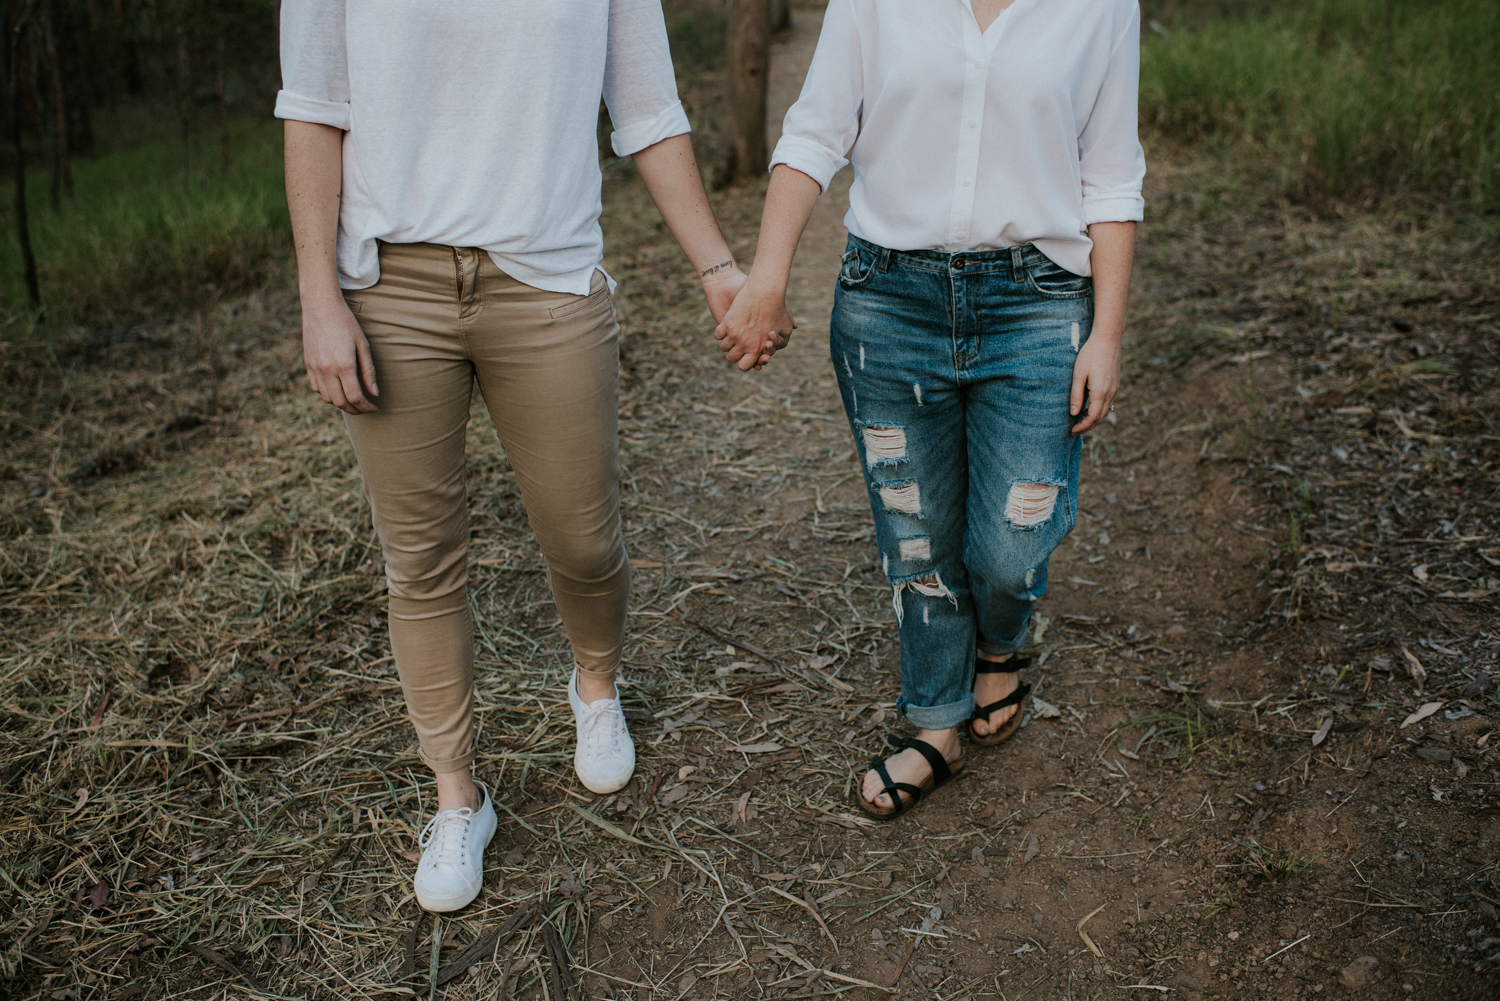 Brisbane Lesbian Wedding Photographer | Same-Sex Engagement-Elopement Photography-2.jpg